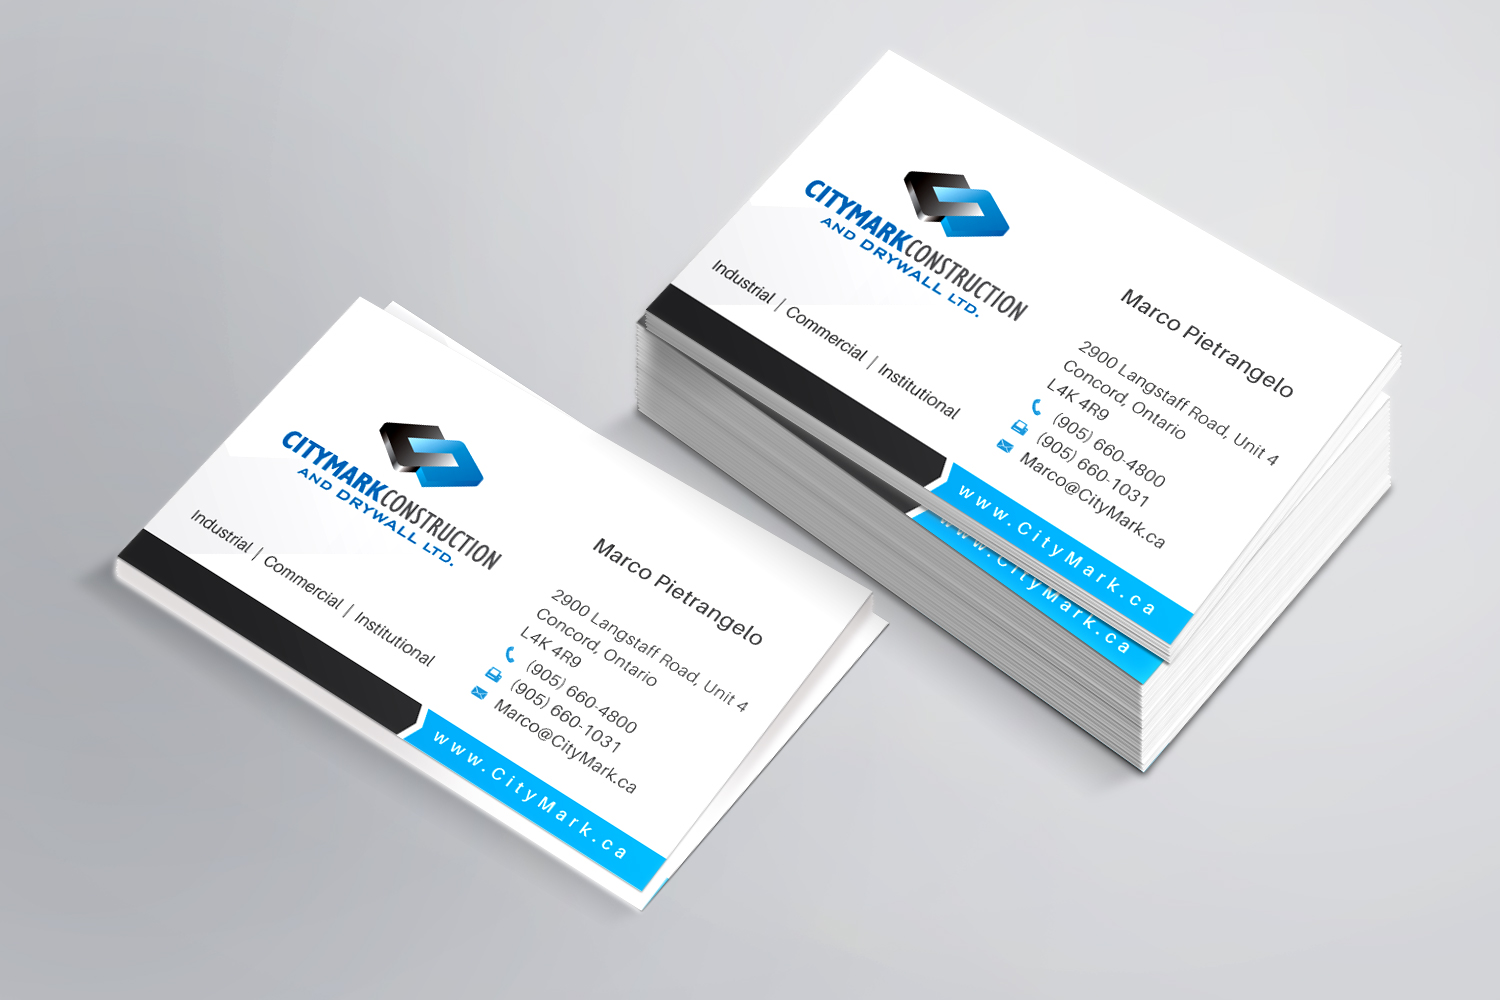 Business cards archives page 3 of 3 go online marketing citymark business cards reheart Gallery